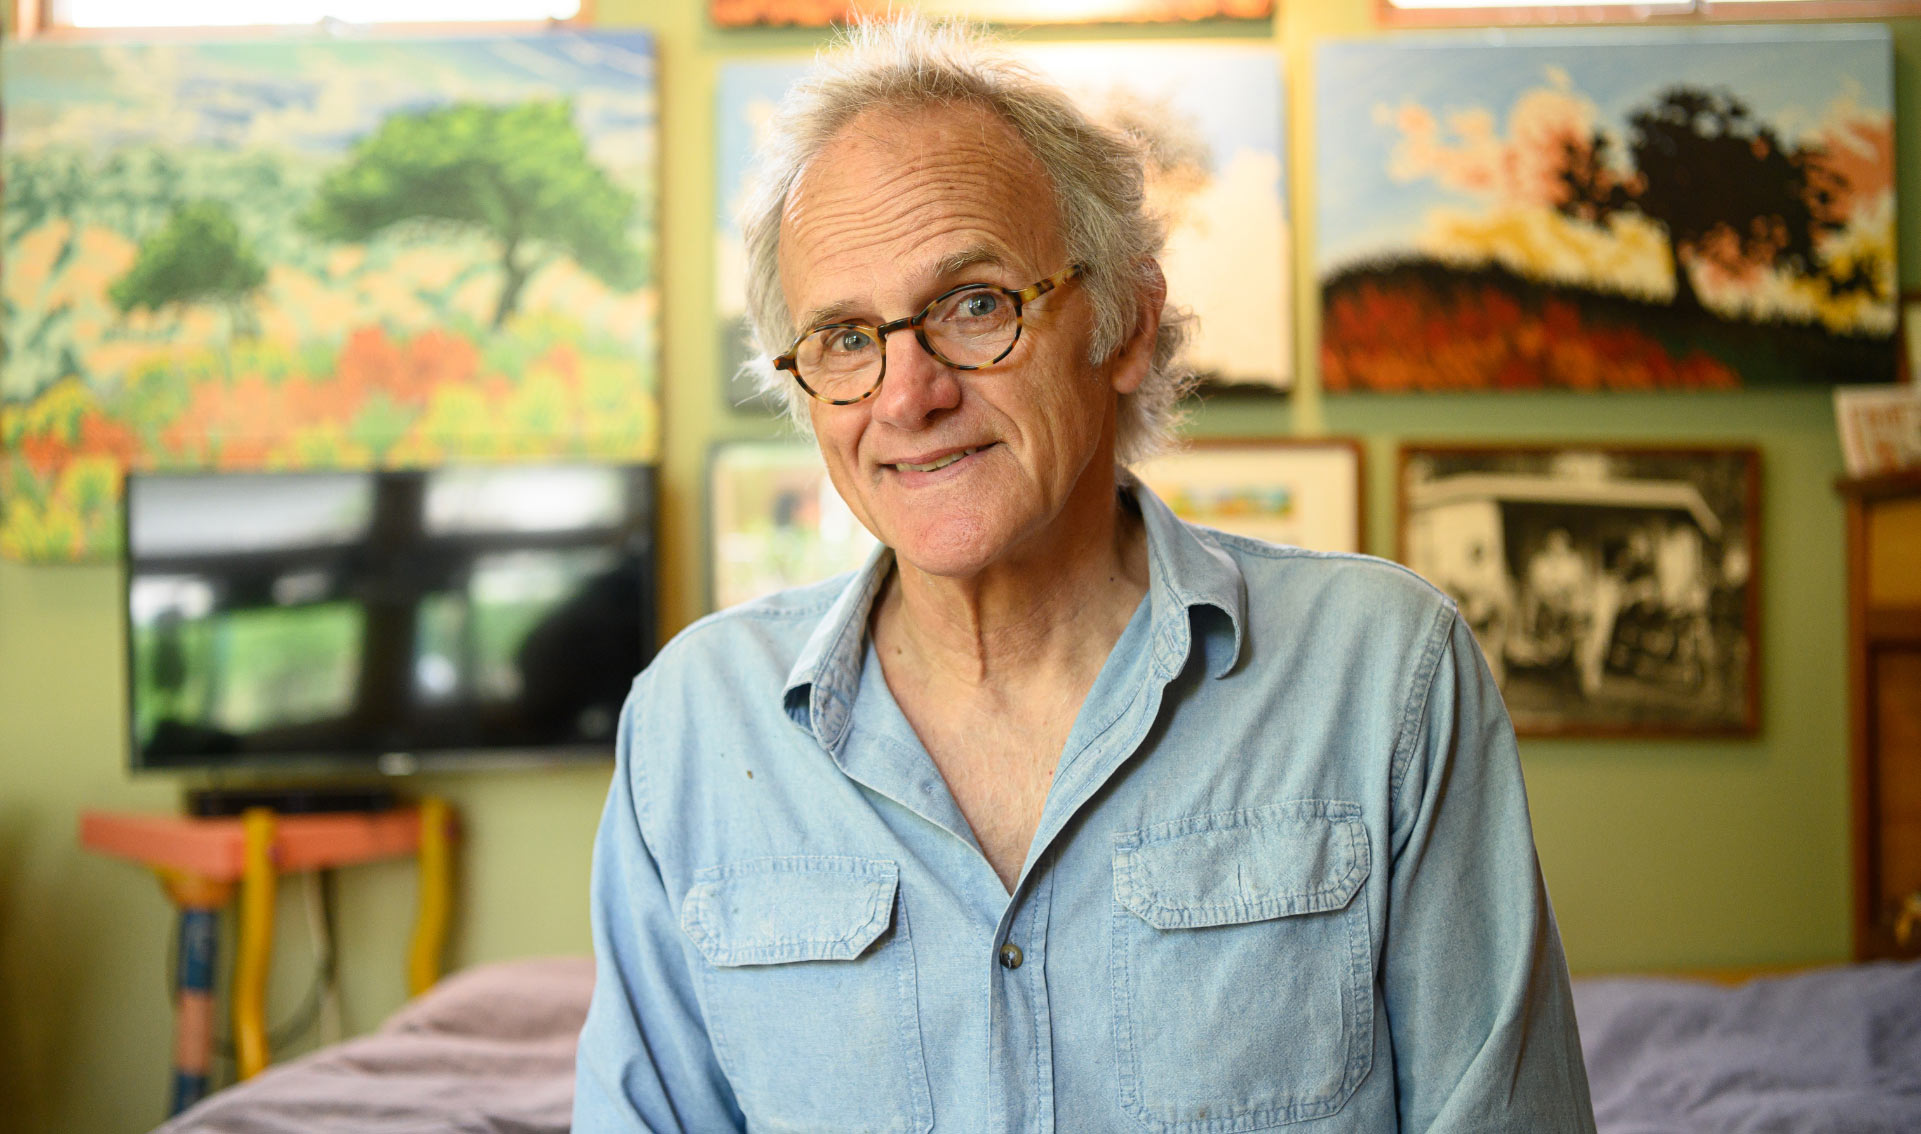 Lynn, smiling, stands in front of a wall of his paintings in his studio.